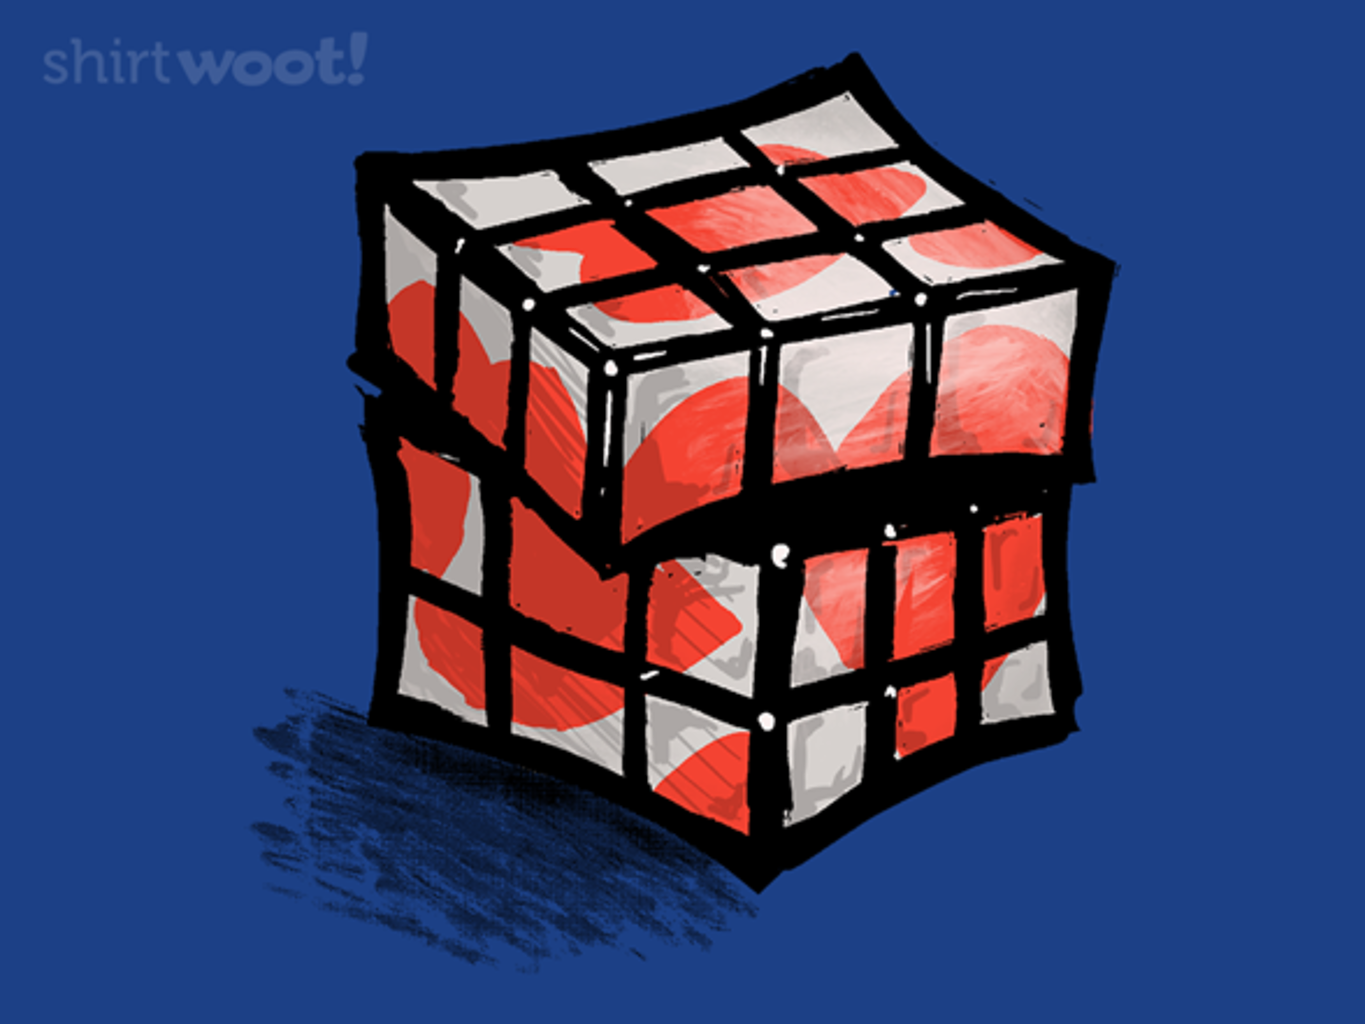 Woot!: Puzzled Heart